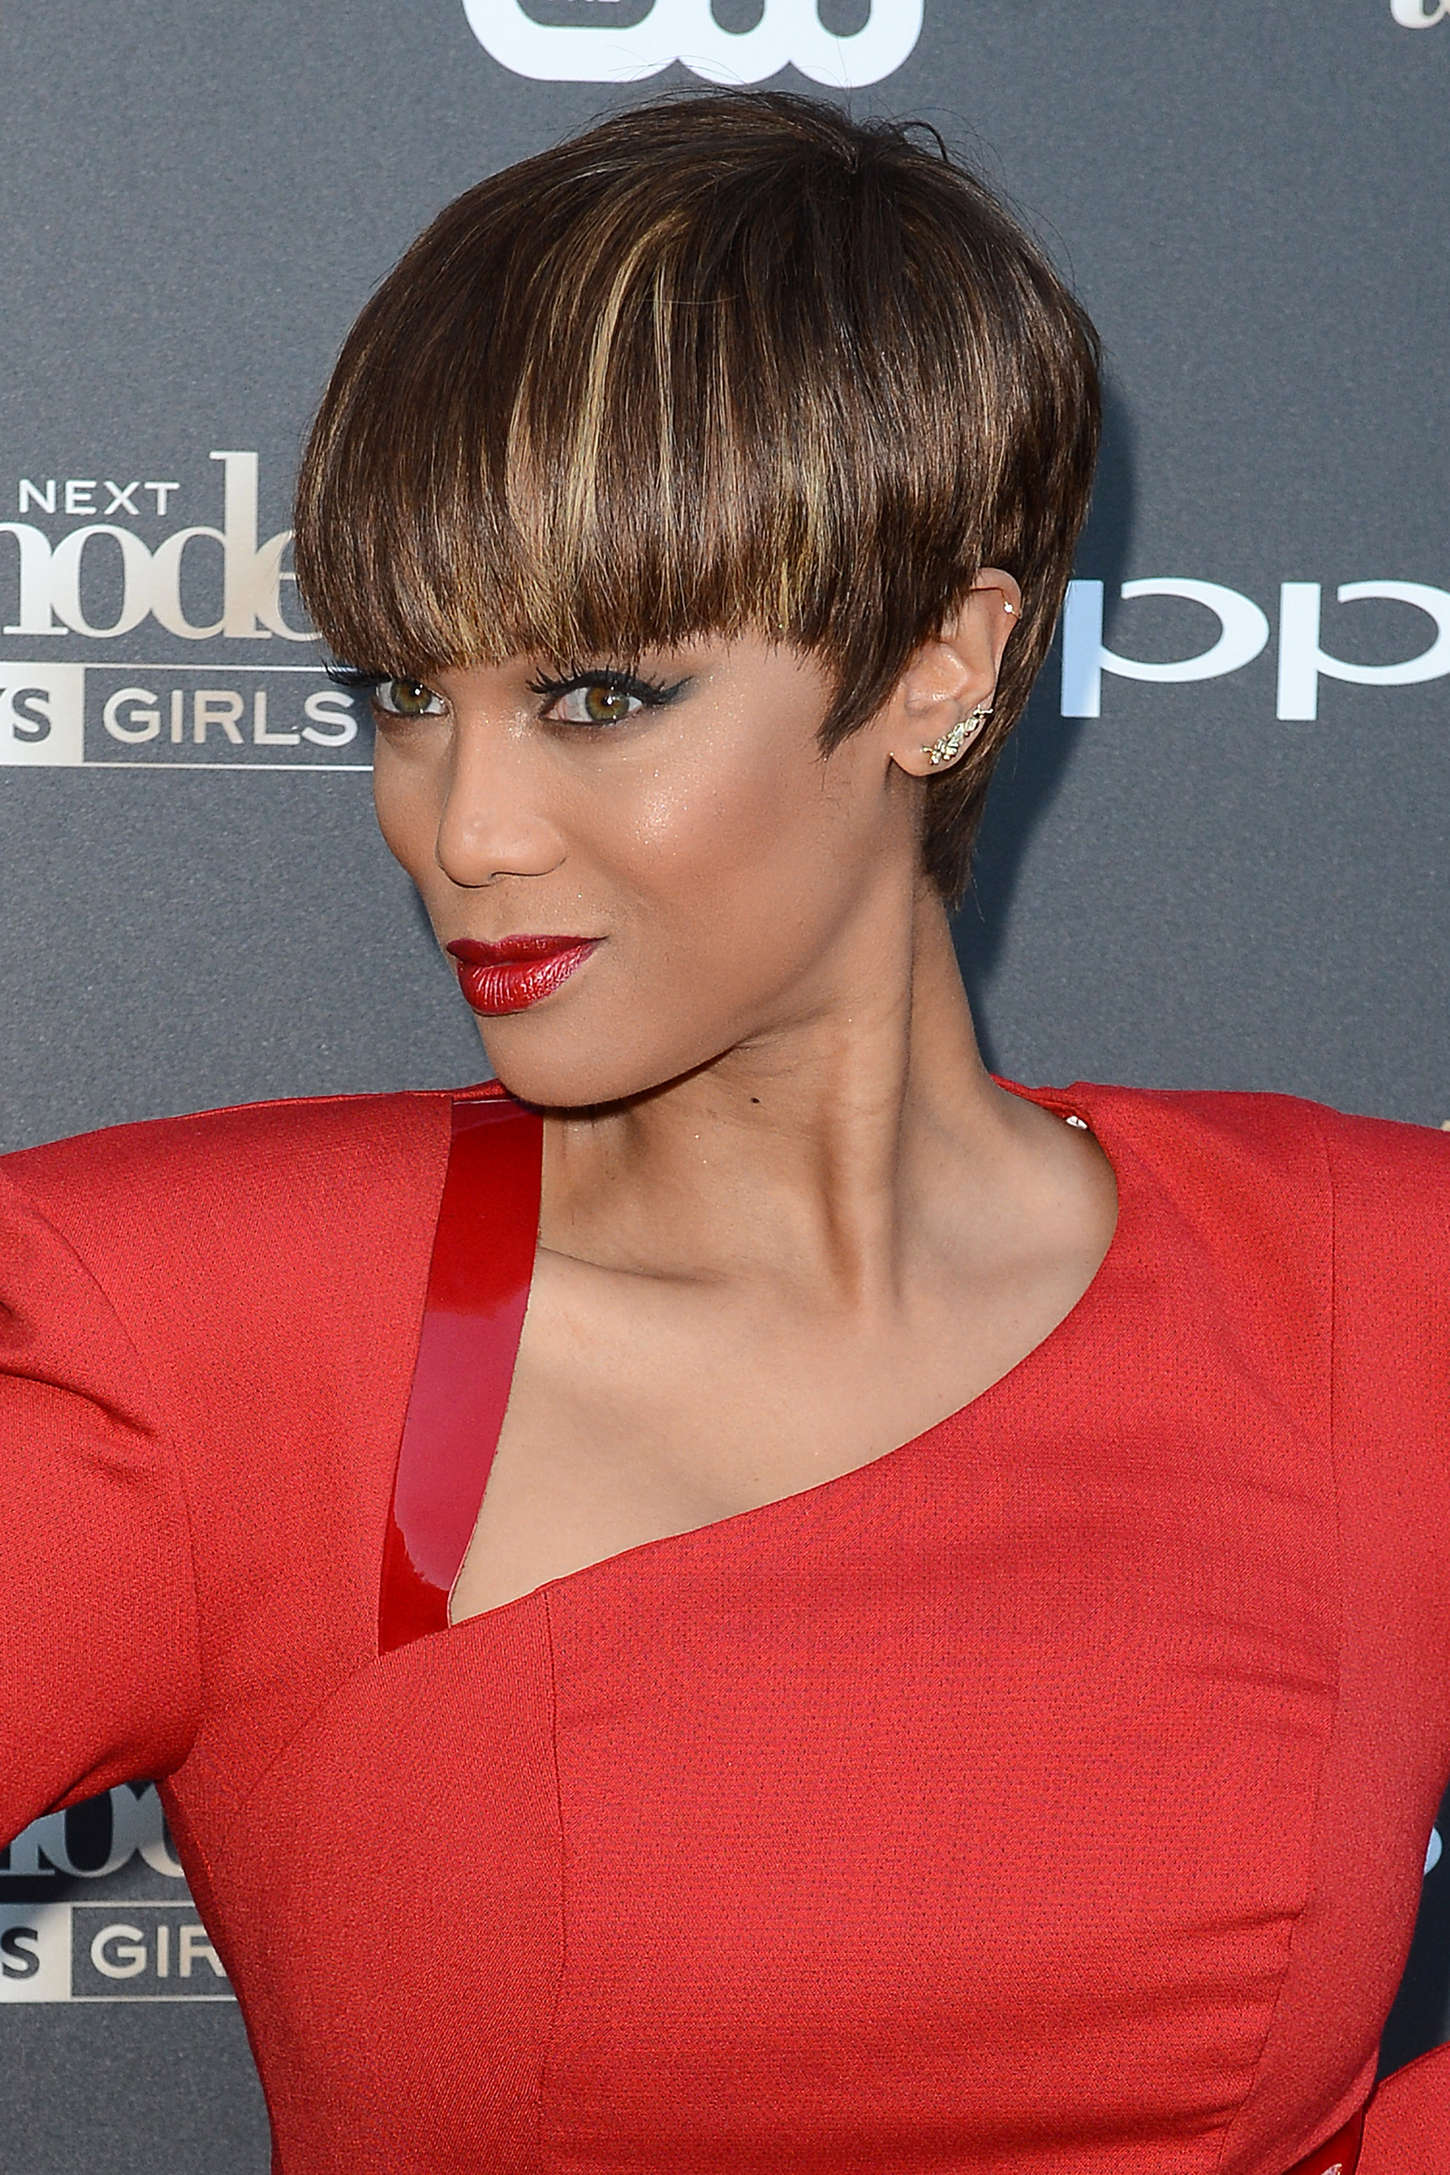 Tyra Banks Americas Next Top Model Cycle Premiere Party in West Hollywood